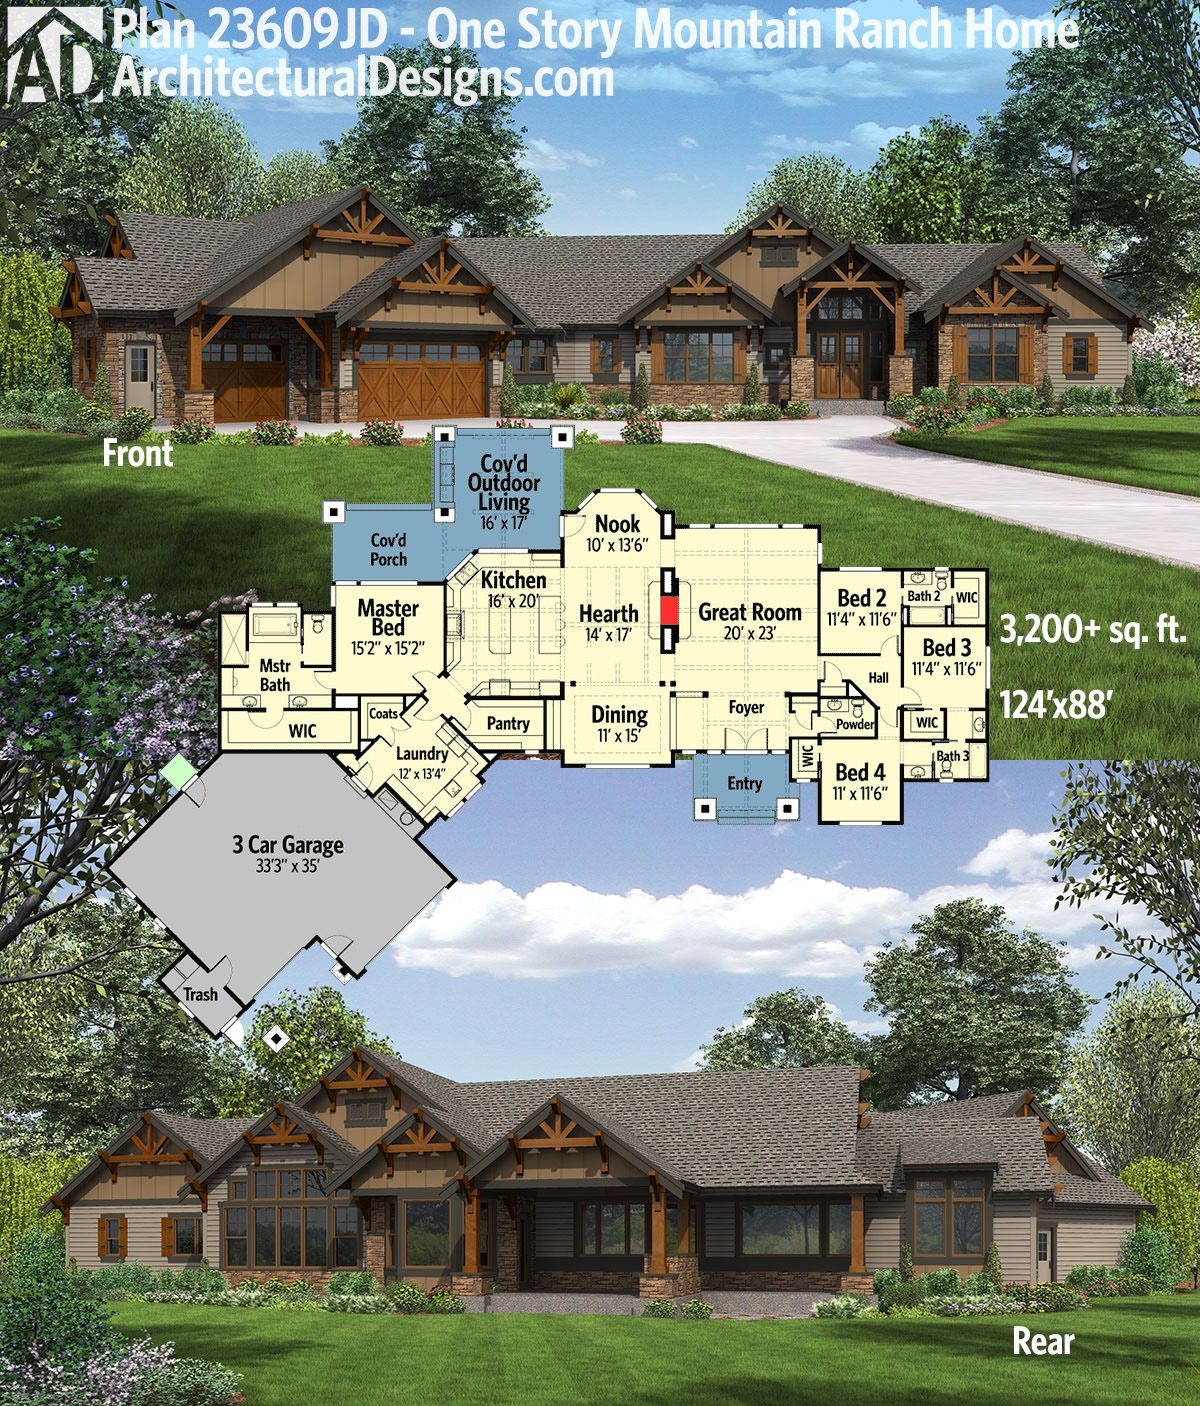 House · Architectural Designs One Story Mountain Ranch Home Plan ...